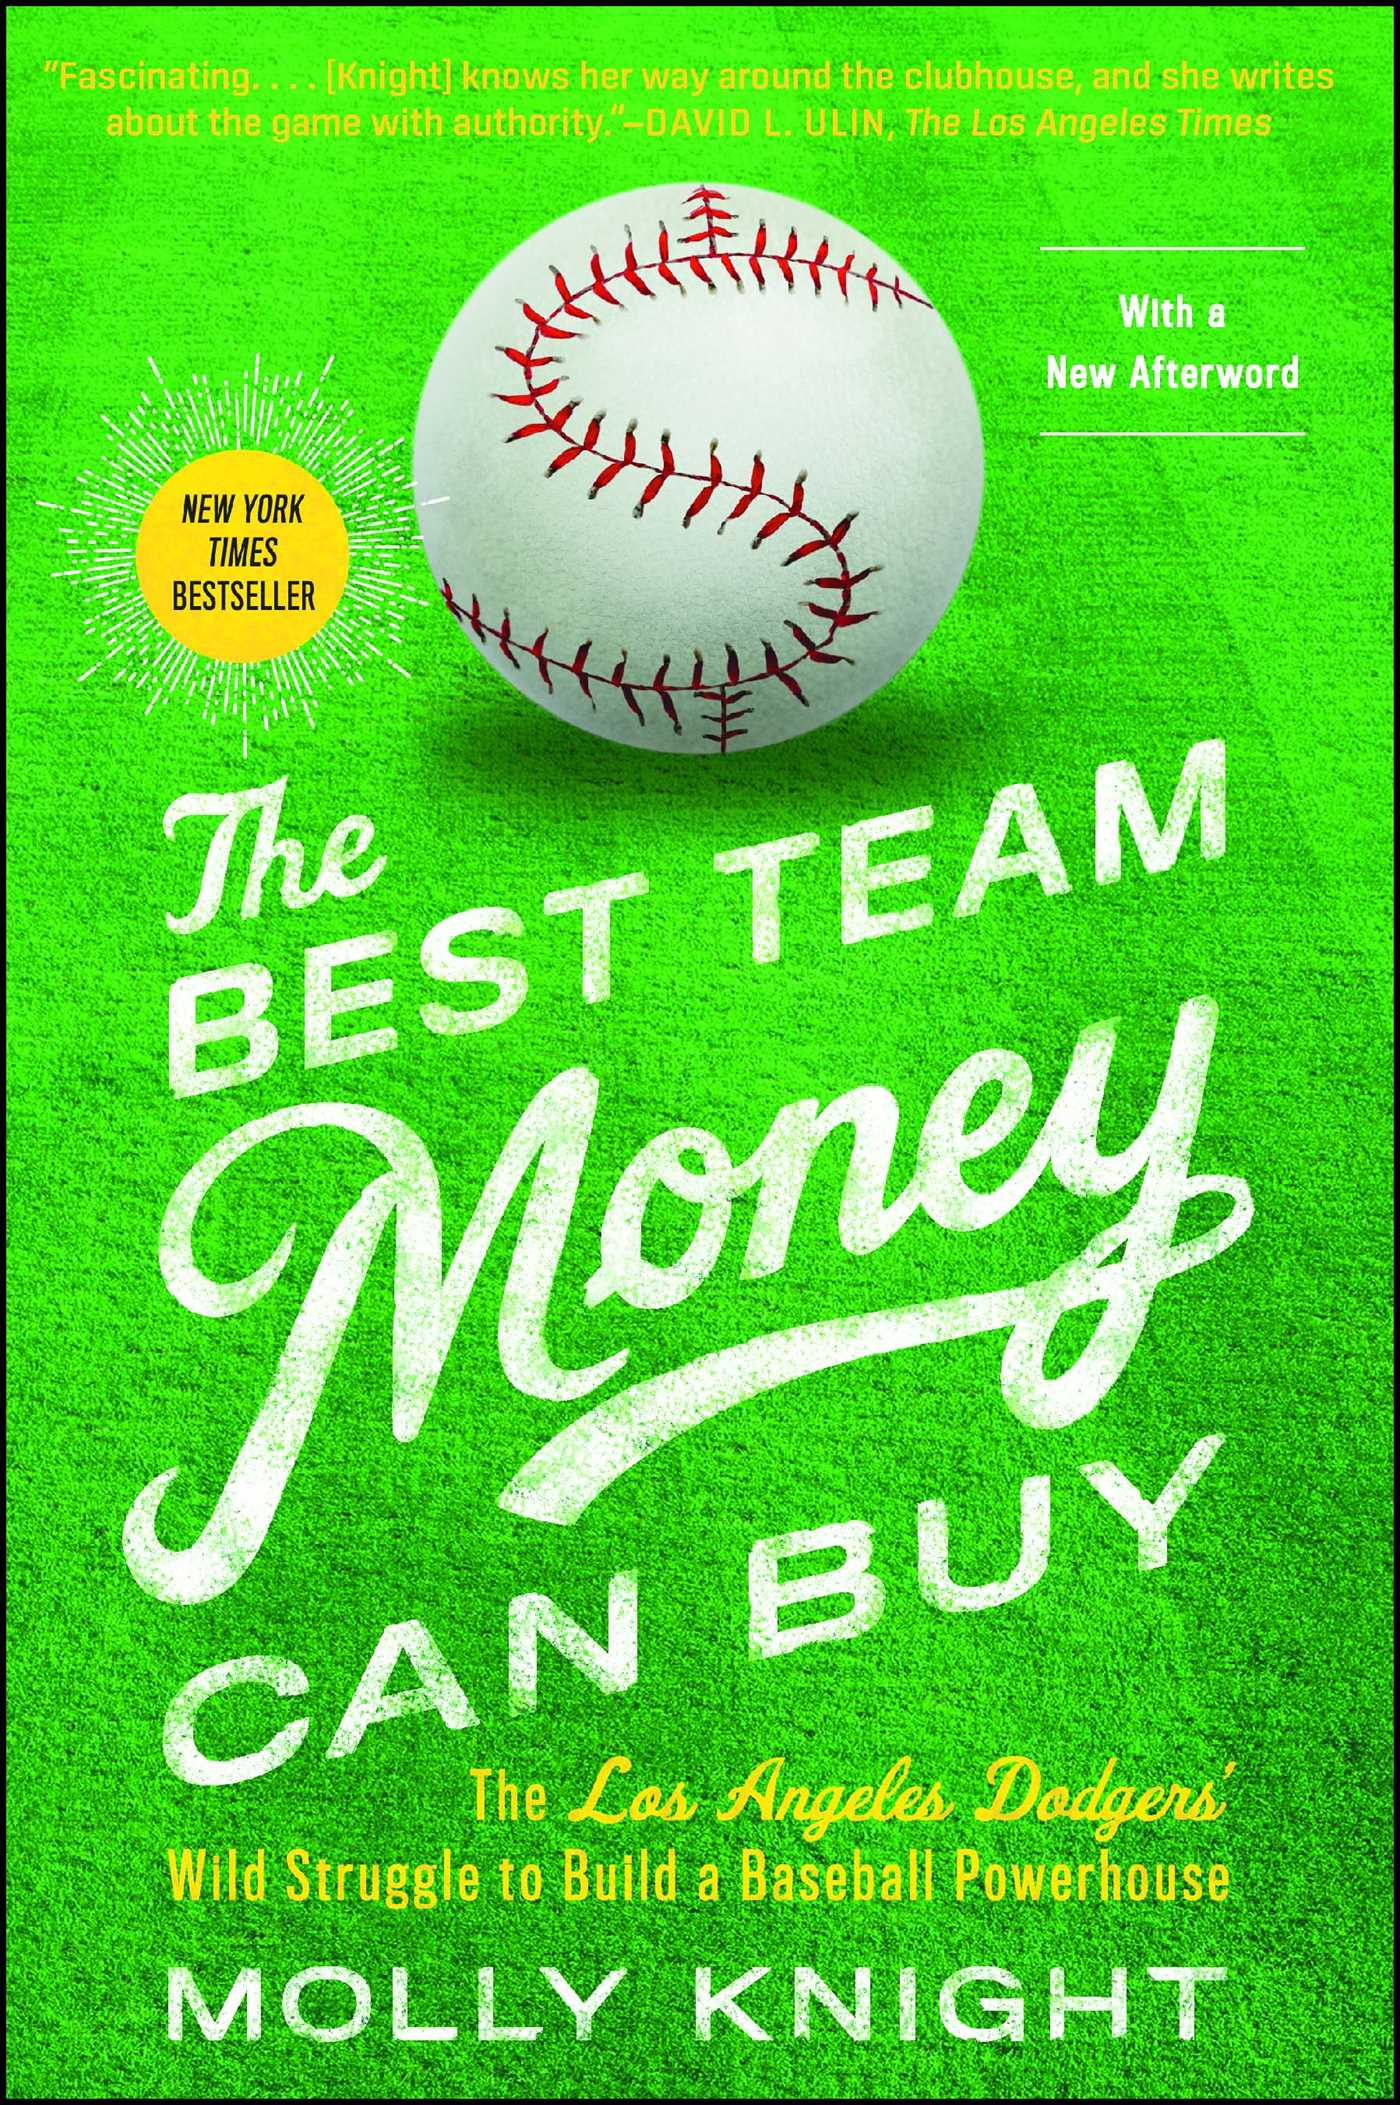 Book Cover Image (jpg): The Best Team Money Can Buy